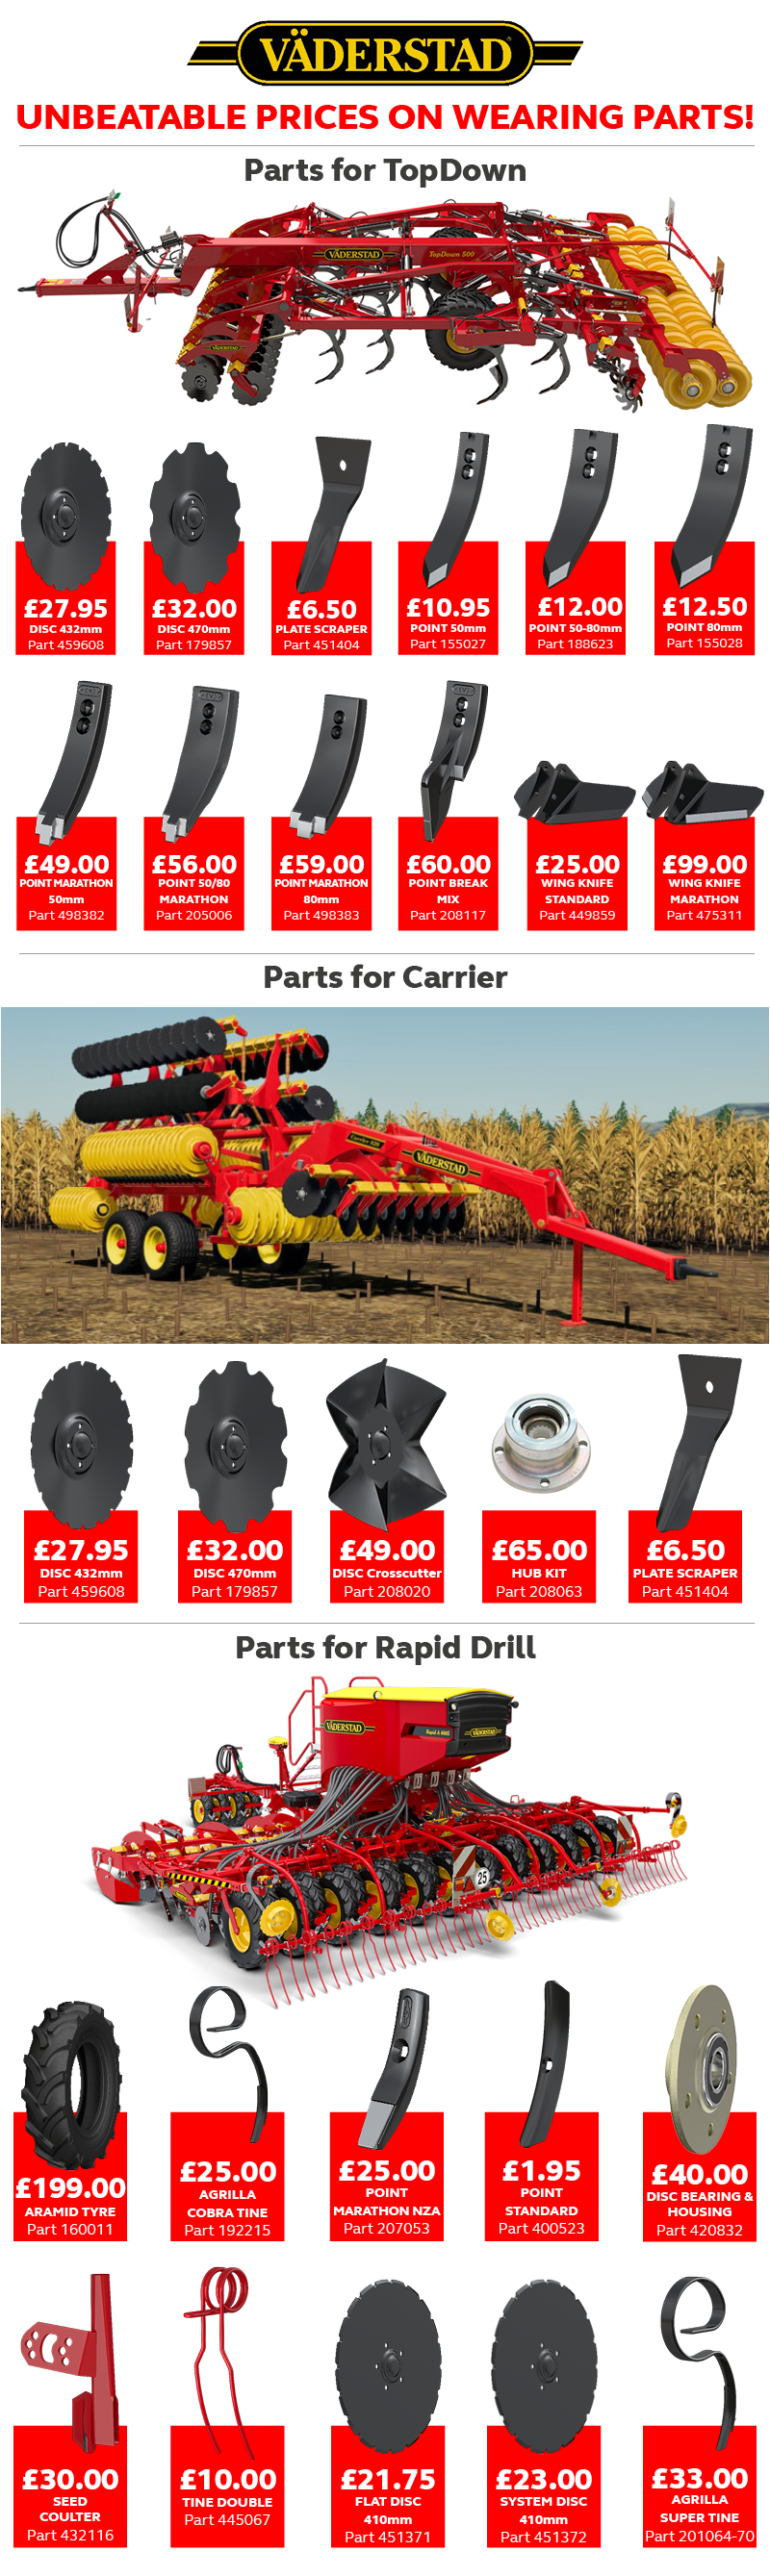 unbeatable prices on Vaderstad wearing parts